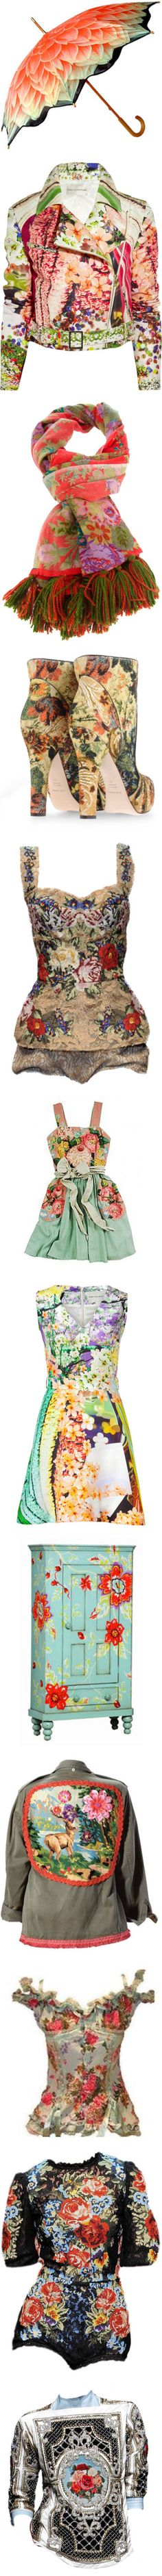 """""""fLoRaL"""" by iggy-rouvinen ❤ liked on Polyvore"""